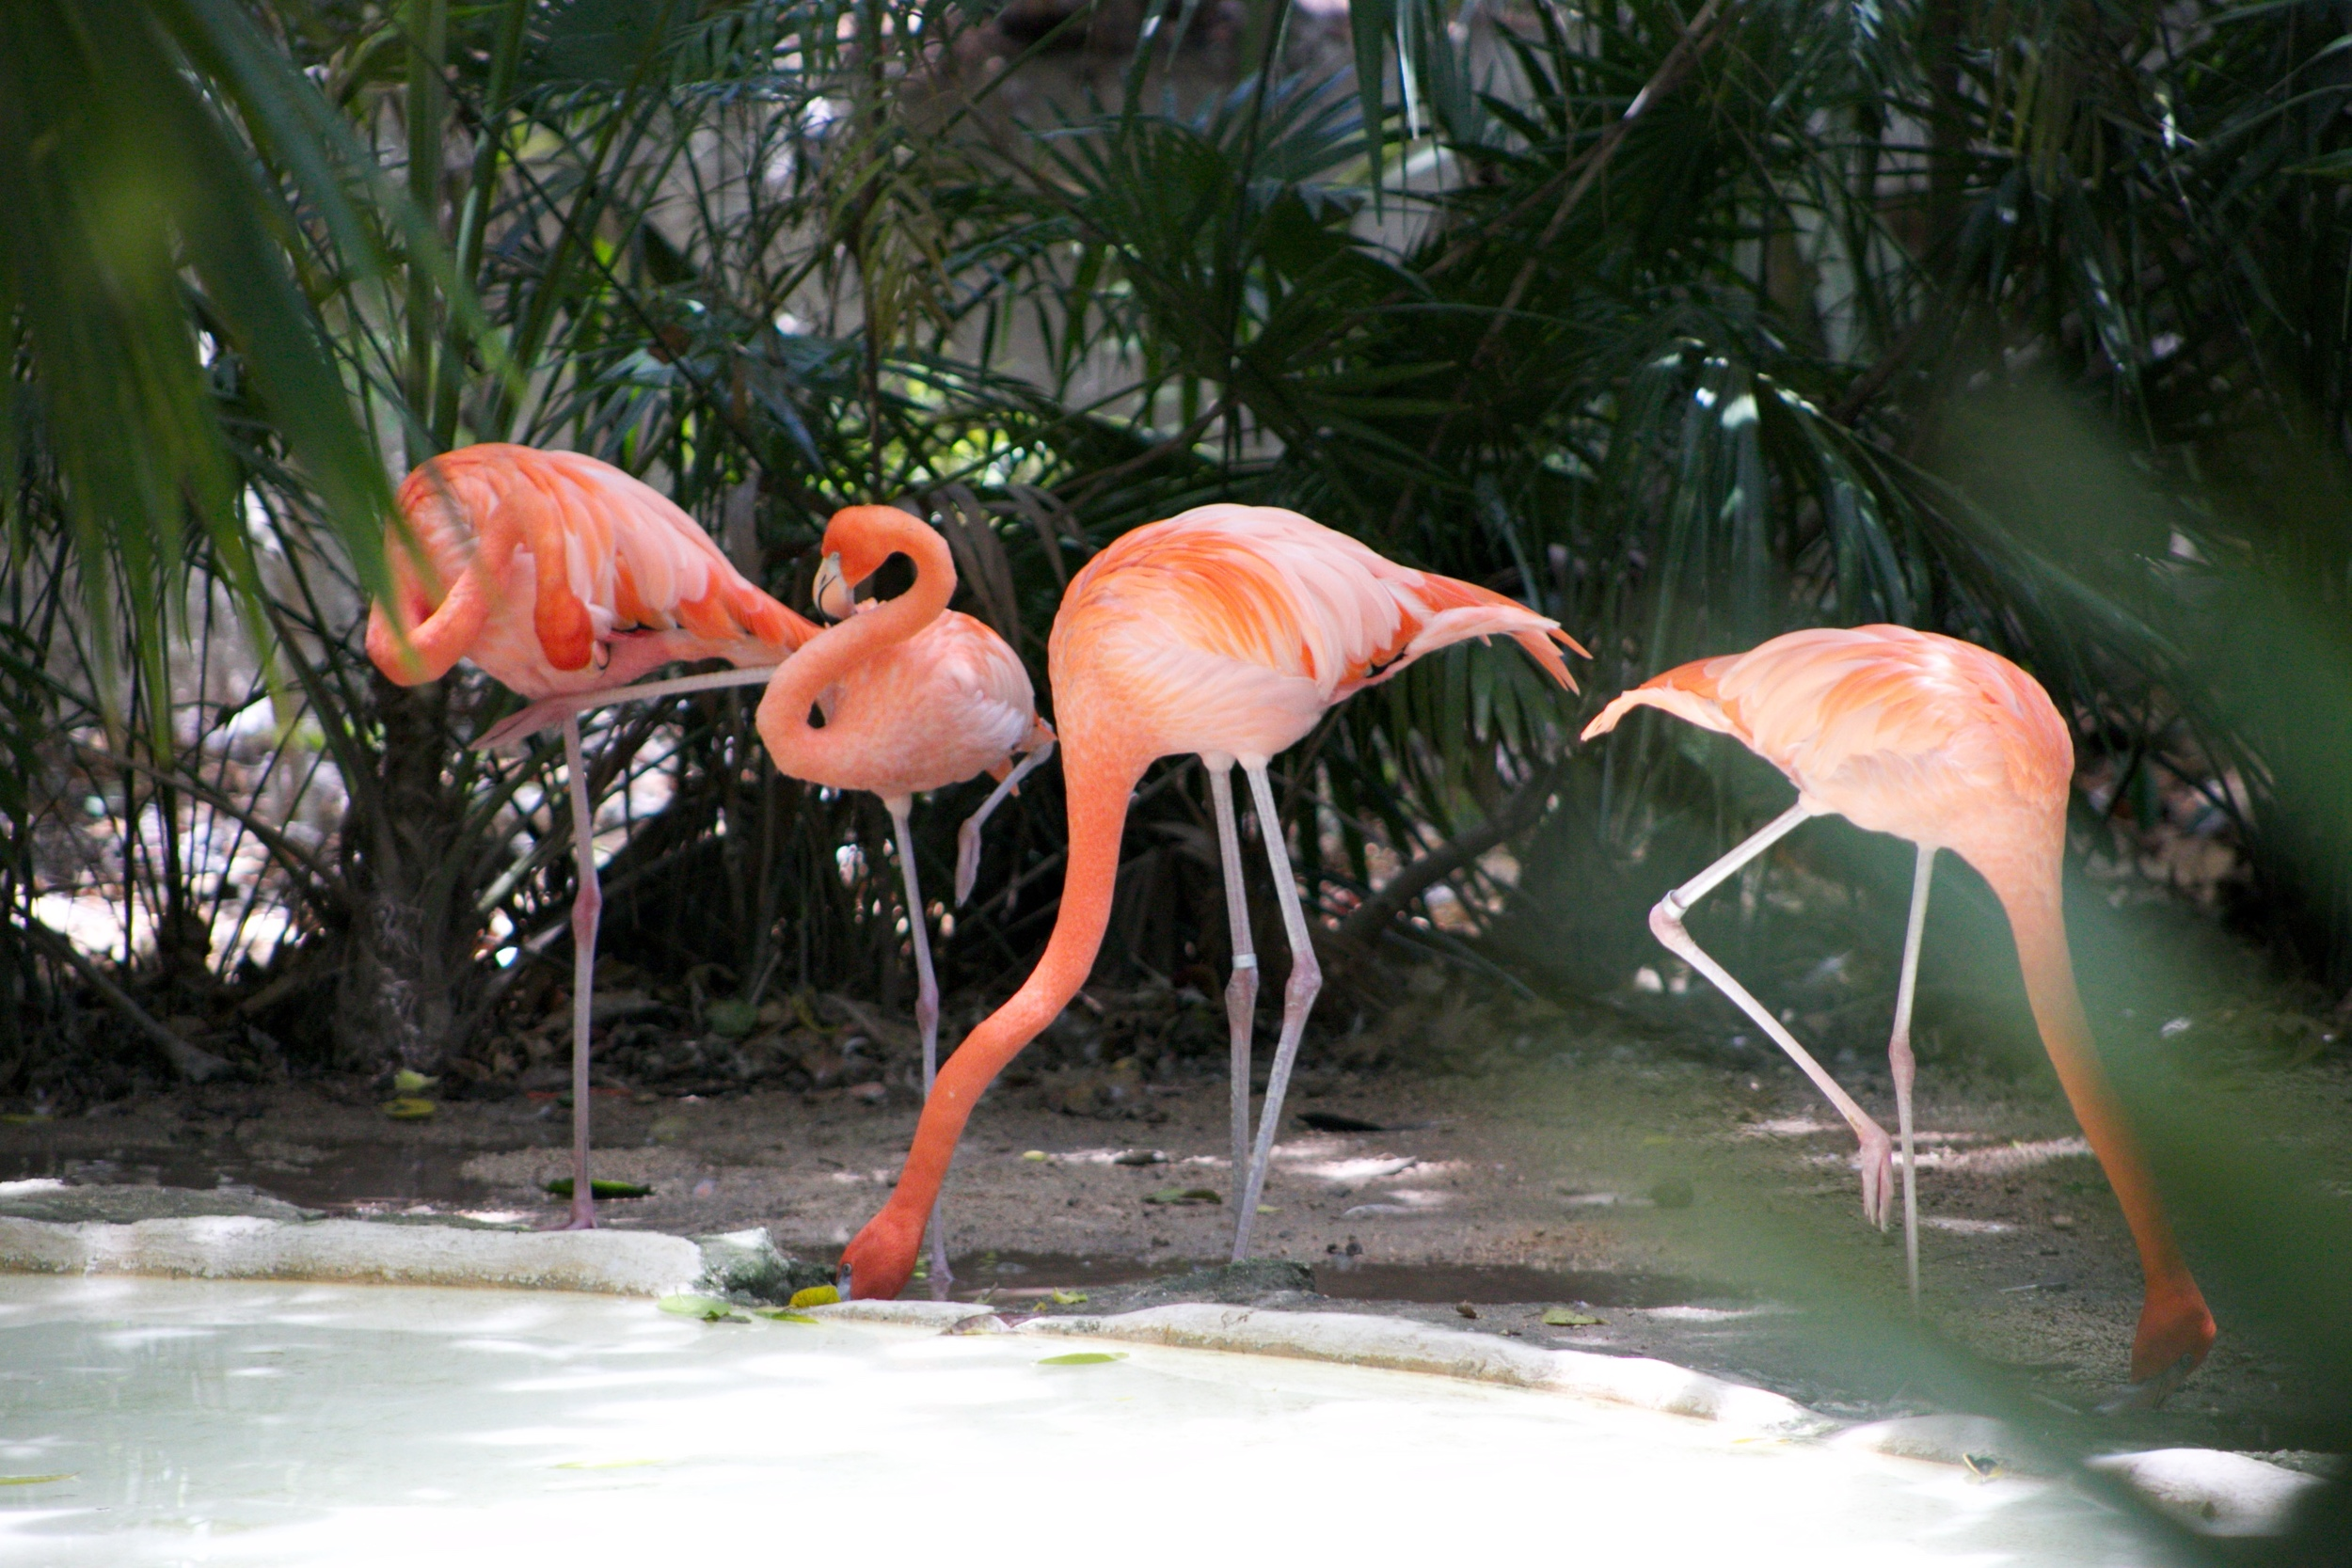 Flamingos by water, seen through green leaves.